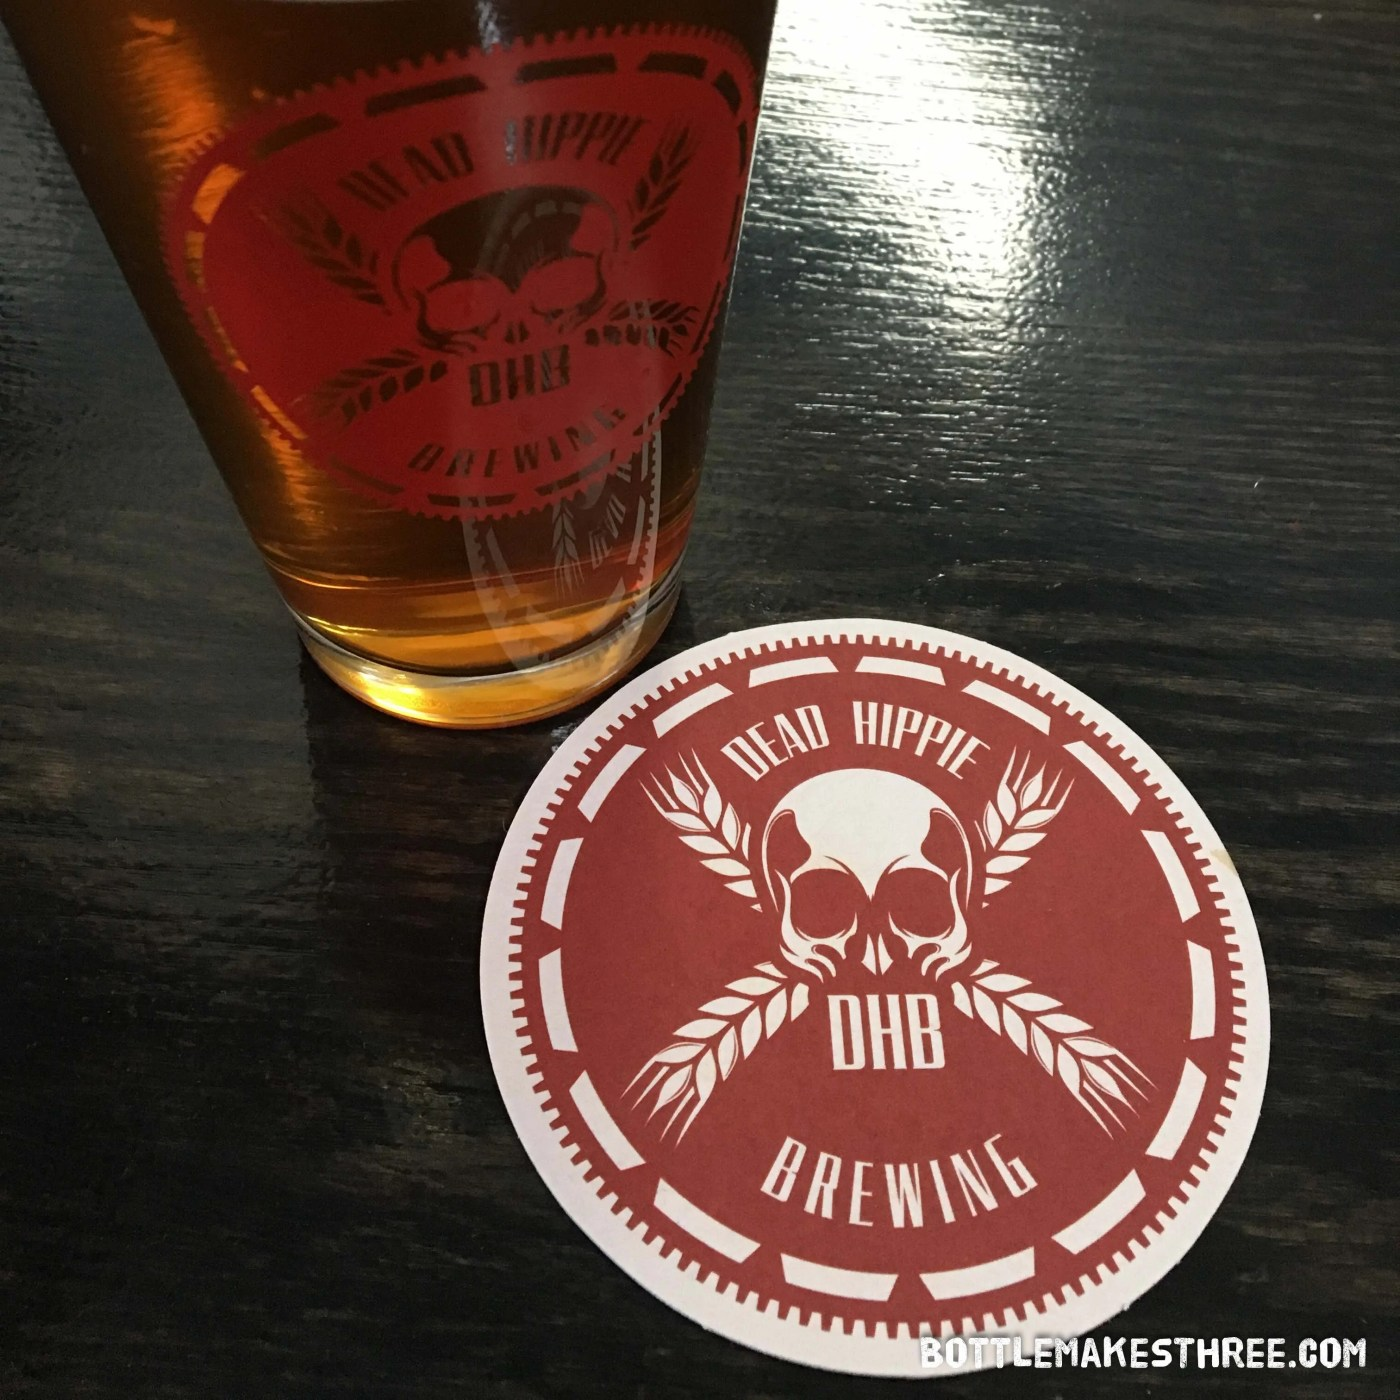 Dead Hippie Brewing, Sheridan CO | BottleMakesThree.com